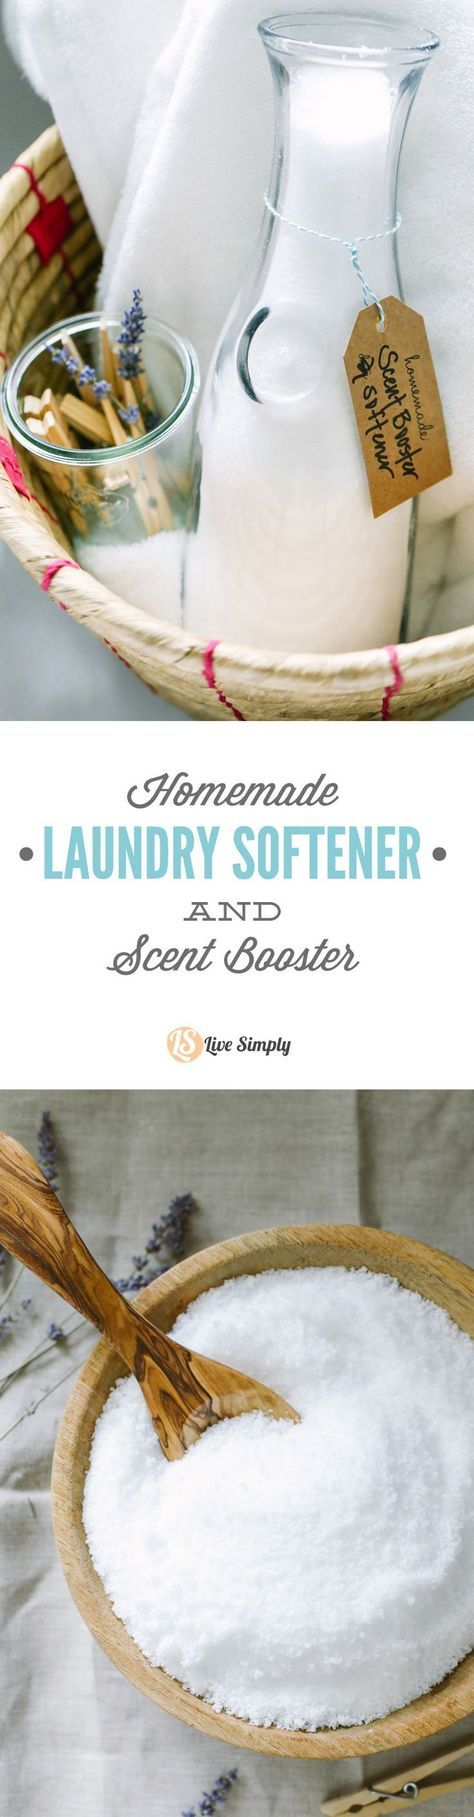 A two-ingredient, homemade fabric softener and scent booster. This stuff is super cheap to make and completely natural. http://livesimply.me/2015/10/21/homemade-laundry-softener-and-scent-booster/